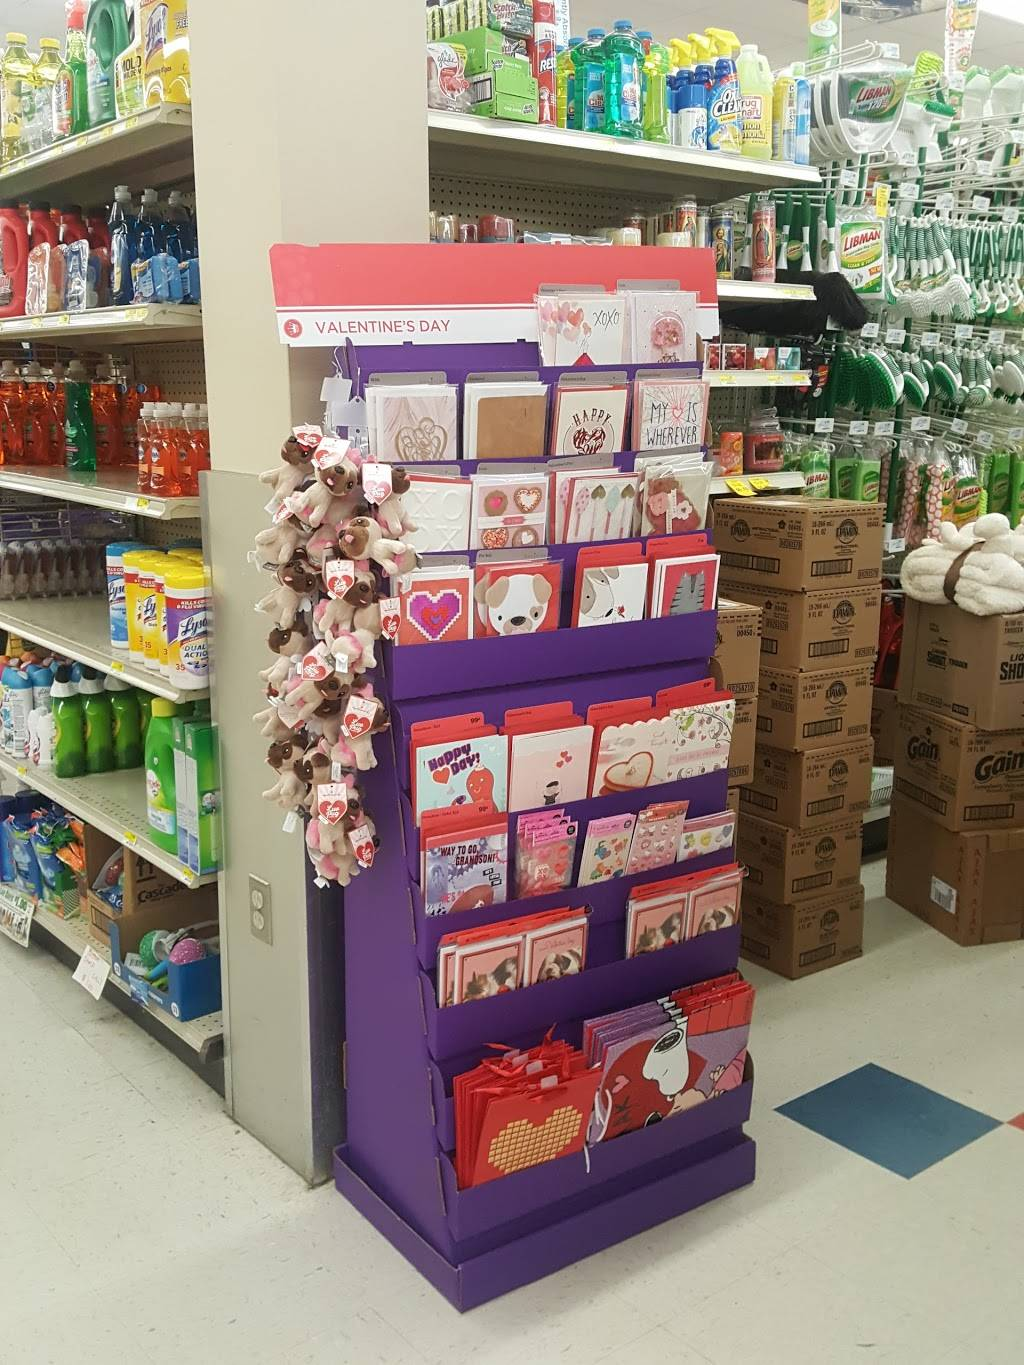 Discount Drug Mart - pharmacy  | Photo 1 of 5 | Address: 6148 Dunham Rd, Maple Heights, OH 44137, USA | Phone: (216) 663-4711